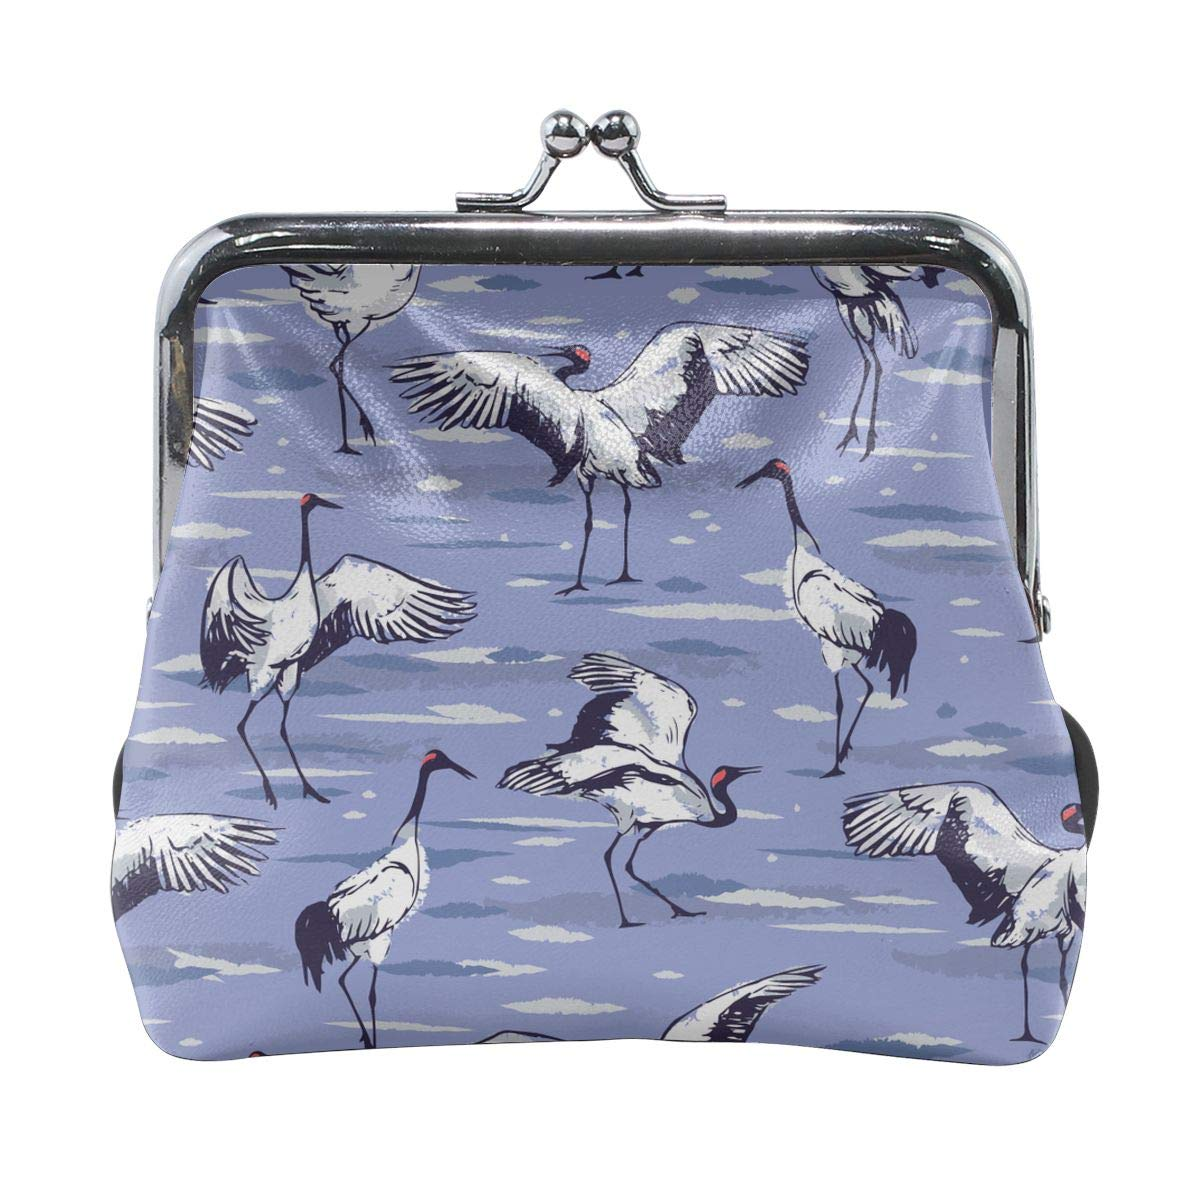 Japanese Cranes Dancing Women Girl Canvas Floral Coin Purse Clutch Pouch Wallet